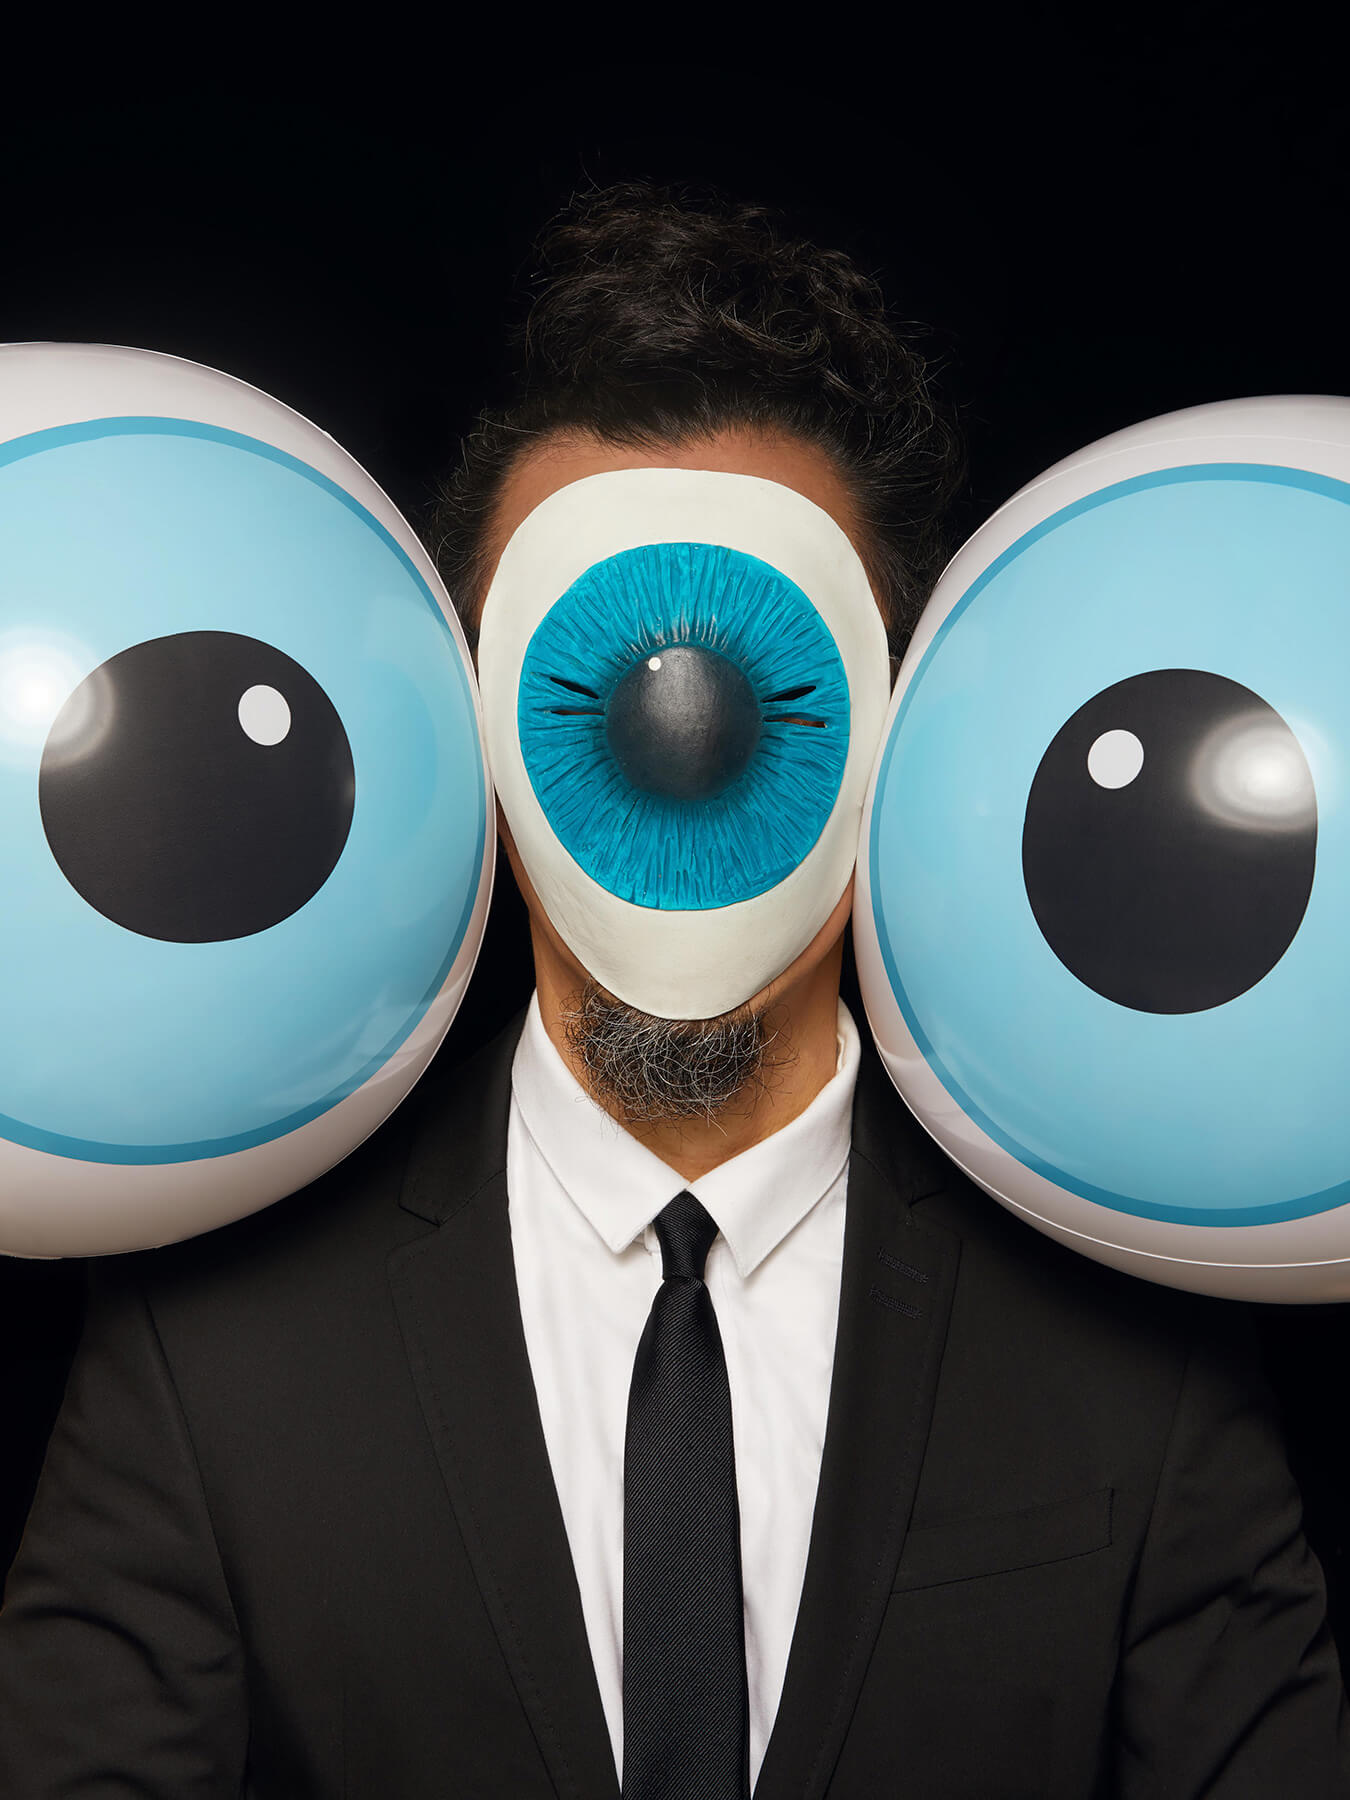 25 Jan 2018 Derong has gargantuan eye rubber balls on his shoulders and a giant eyeball mask on